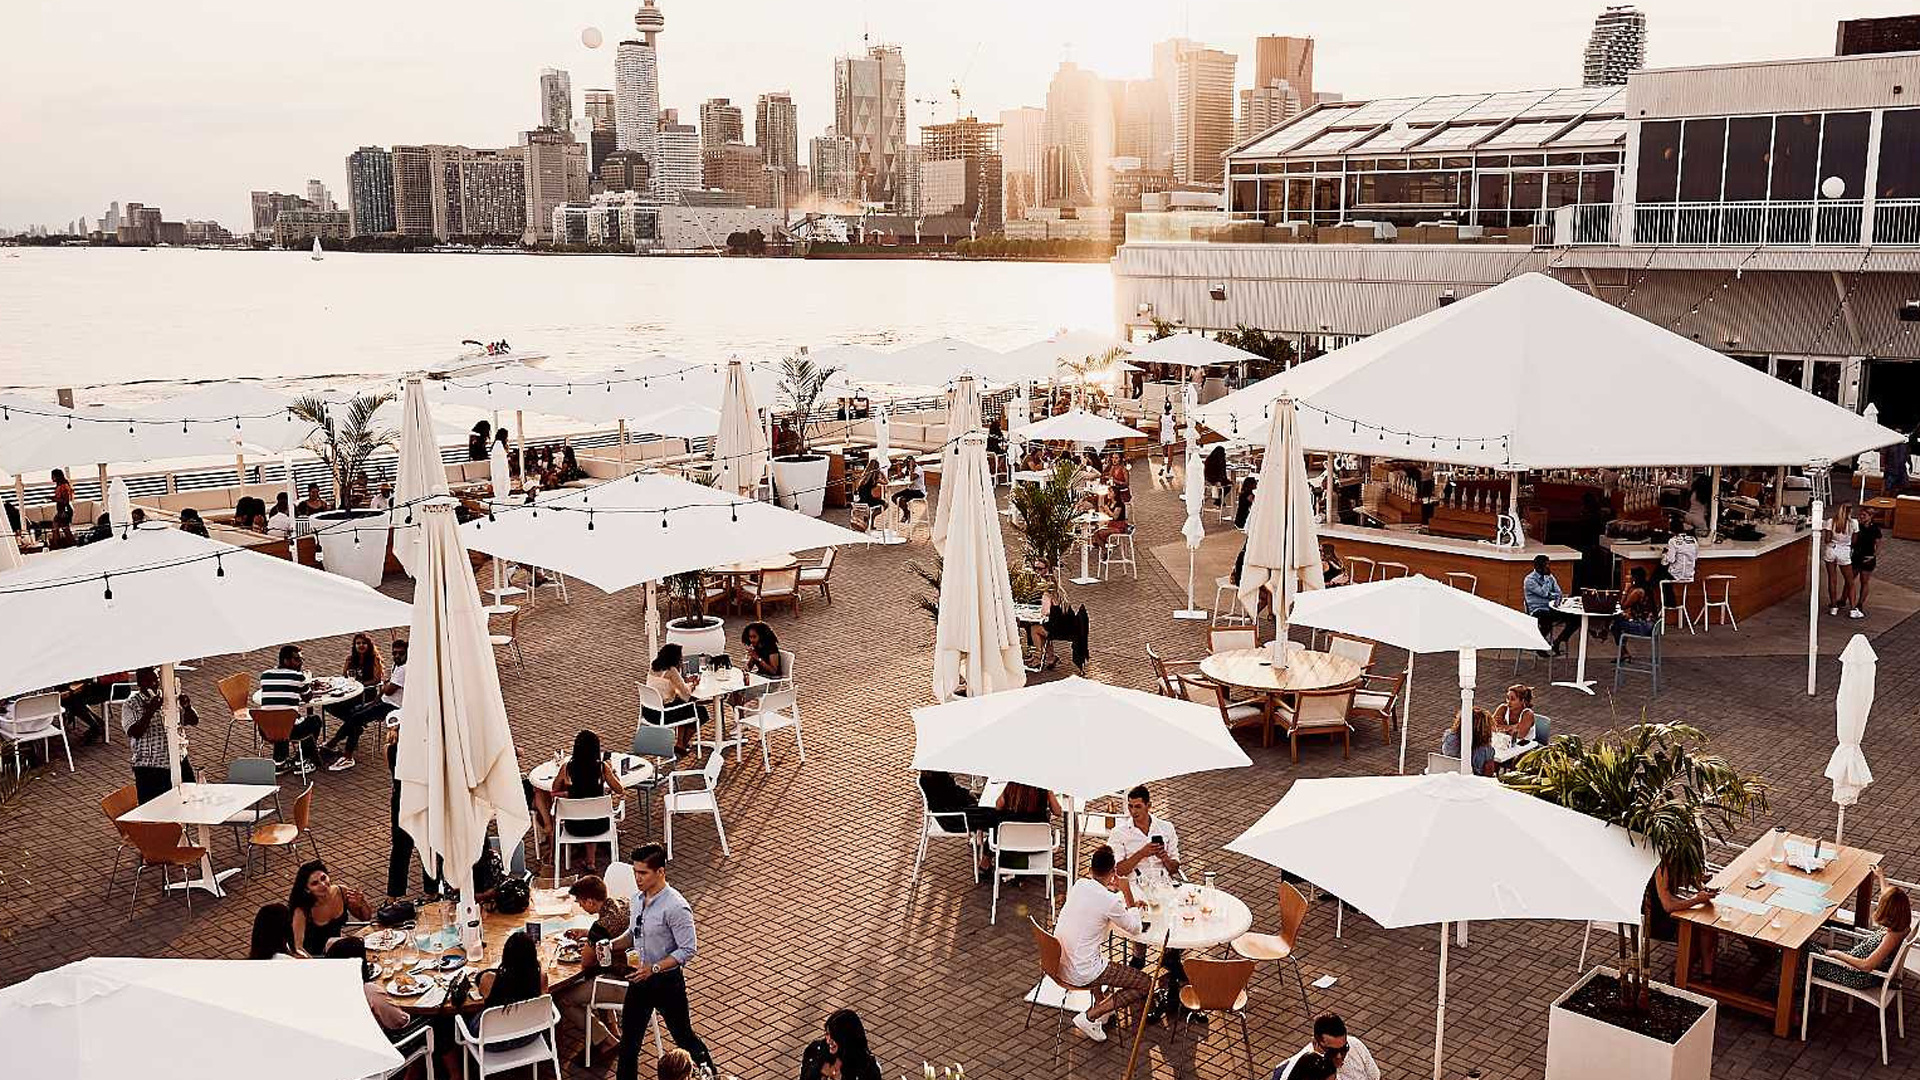 The best patios in Toronto: Cabana Waterfront Patio